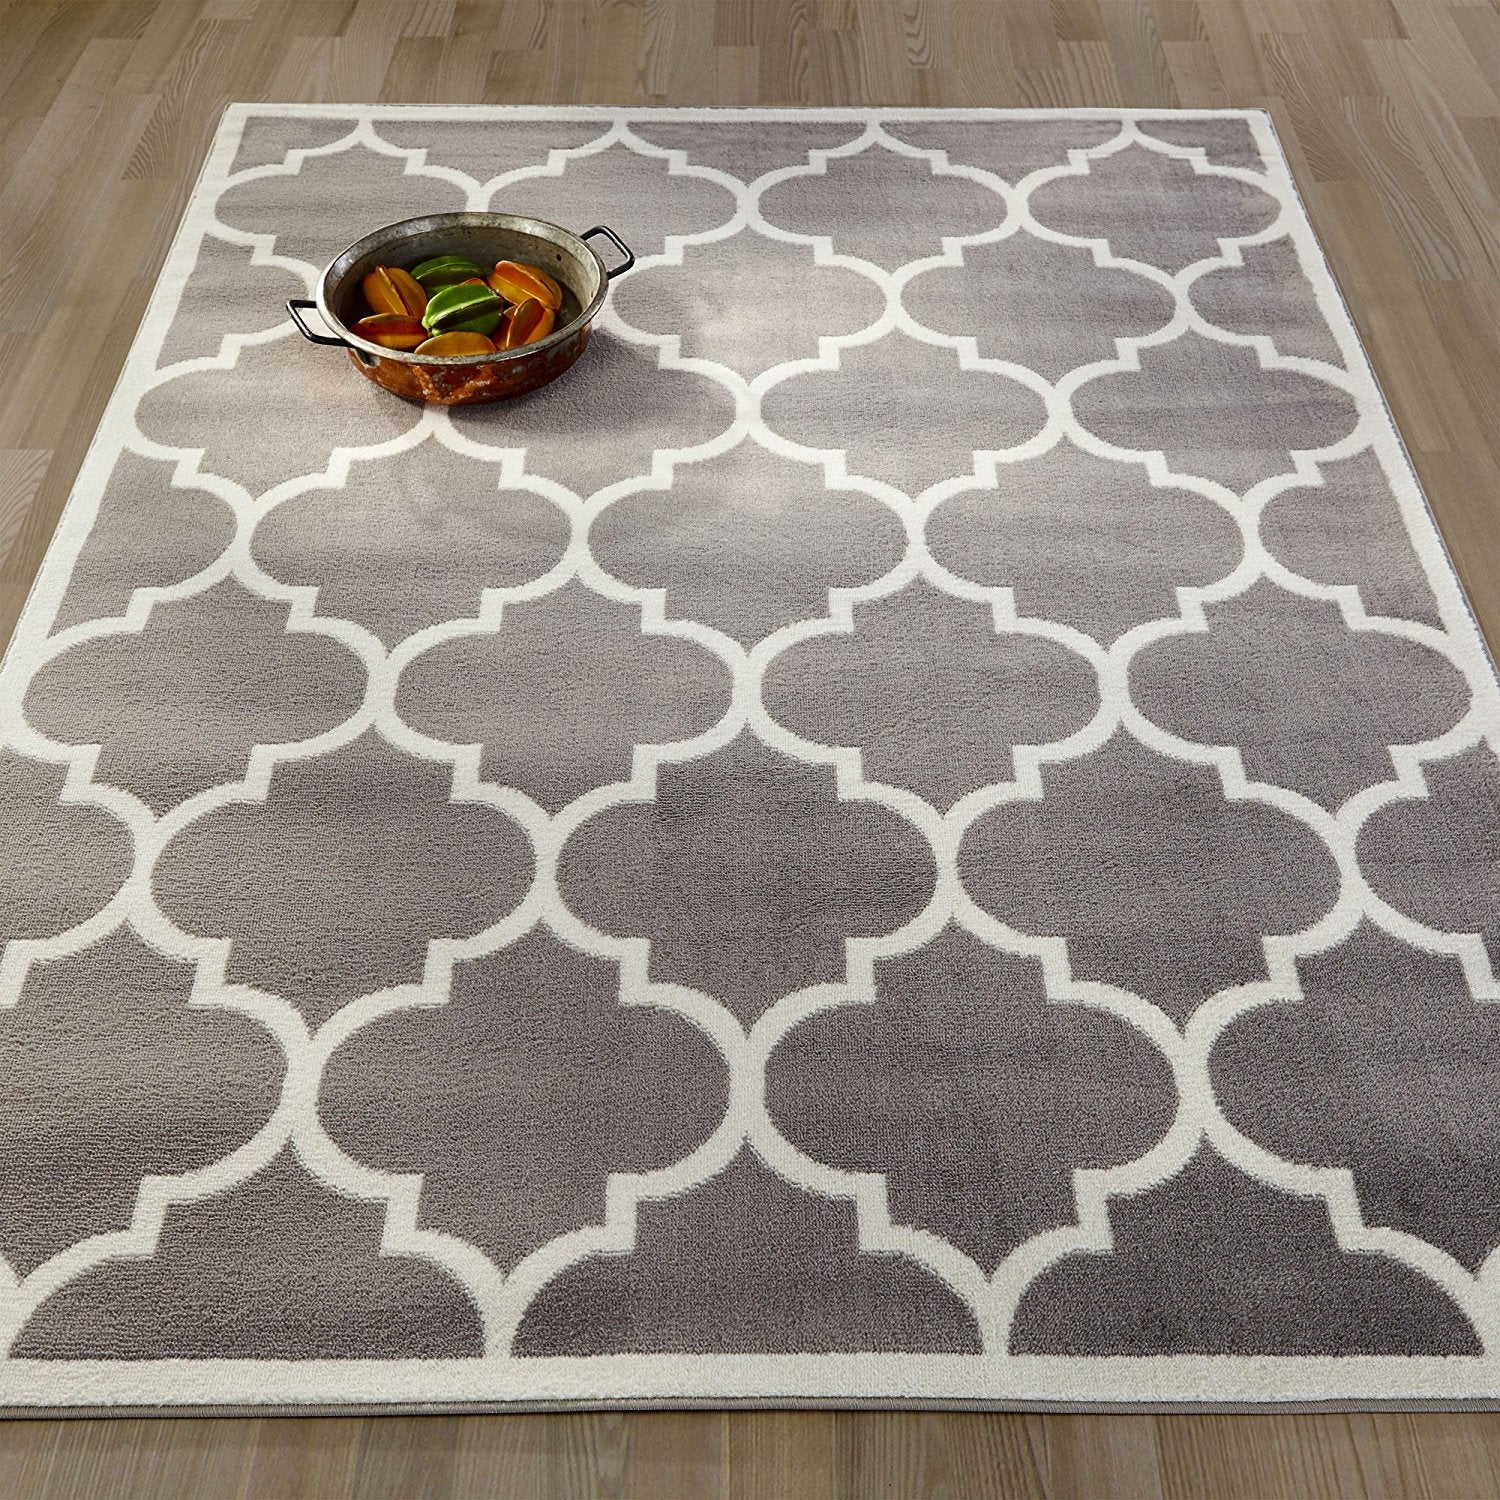 rug wool hand graywhite area pdx gray mats inc felt tufted white rugs wayfair and